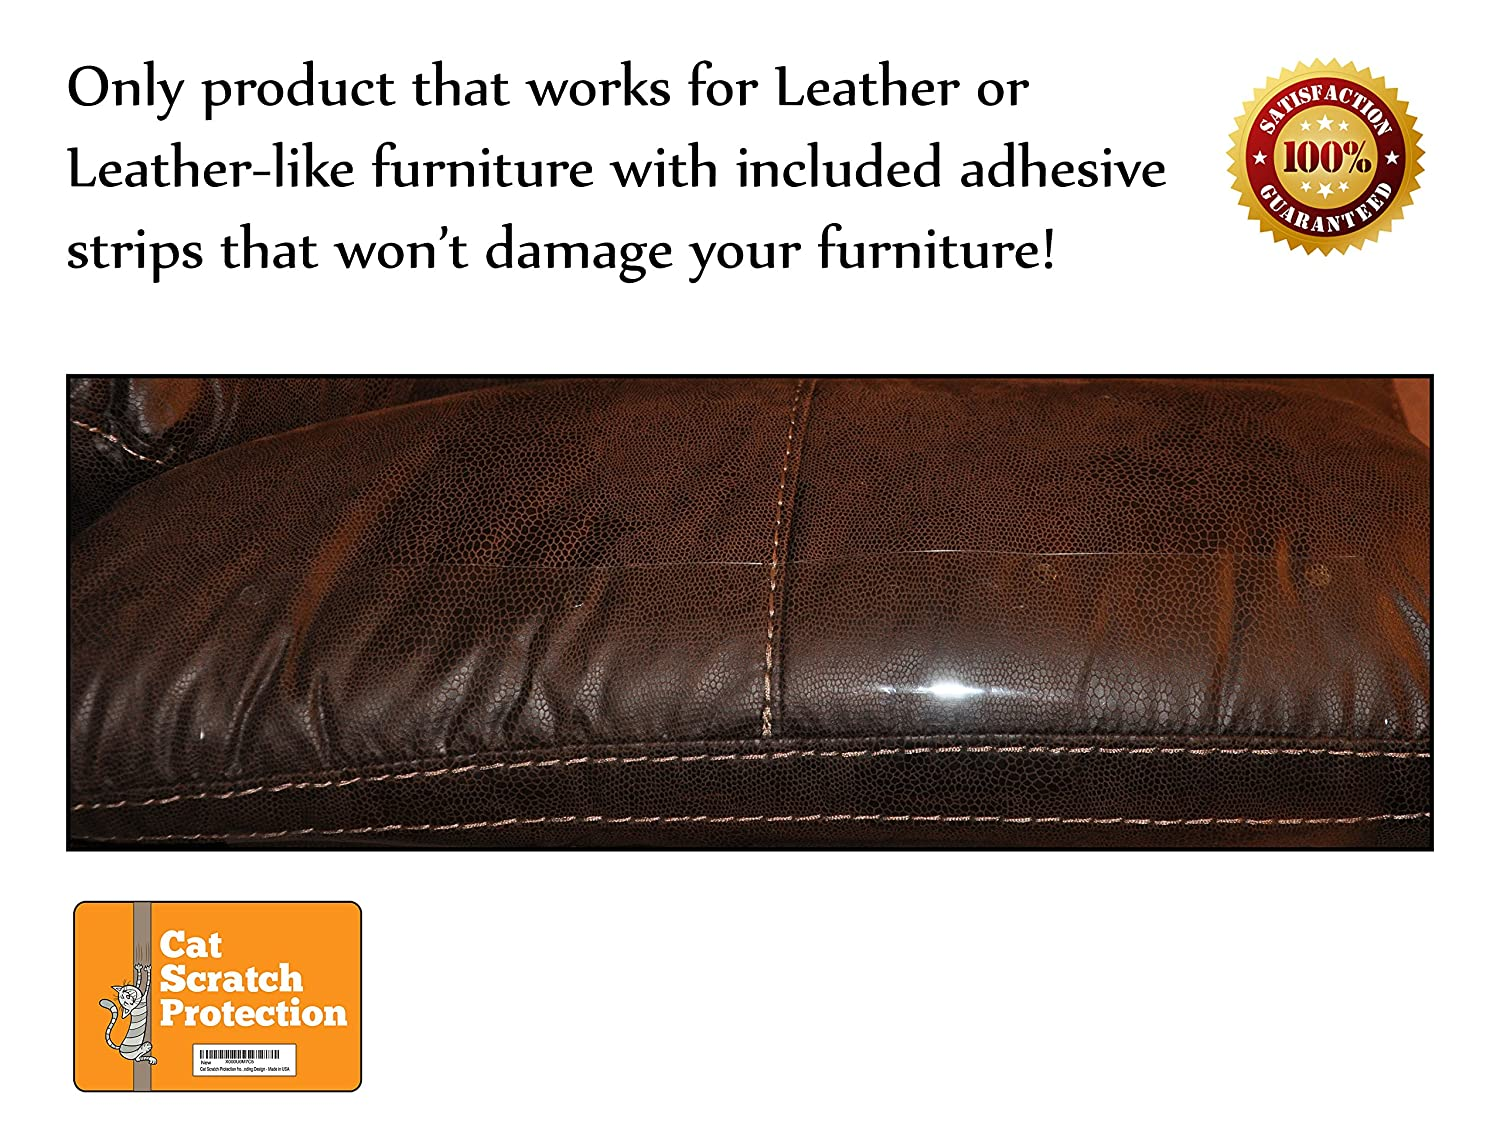 Cat Scratch Protection On Any Couch, Sofa Or Chair, Works For Leather And  Upholstered Furniture, 2 Scratching Guards Included, Scratching Deterrent,  Deter ...